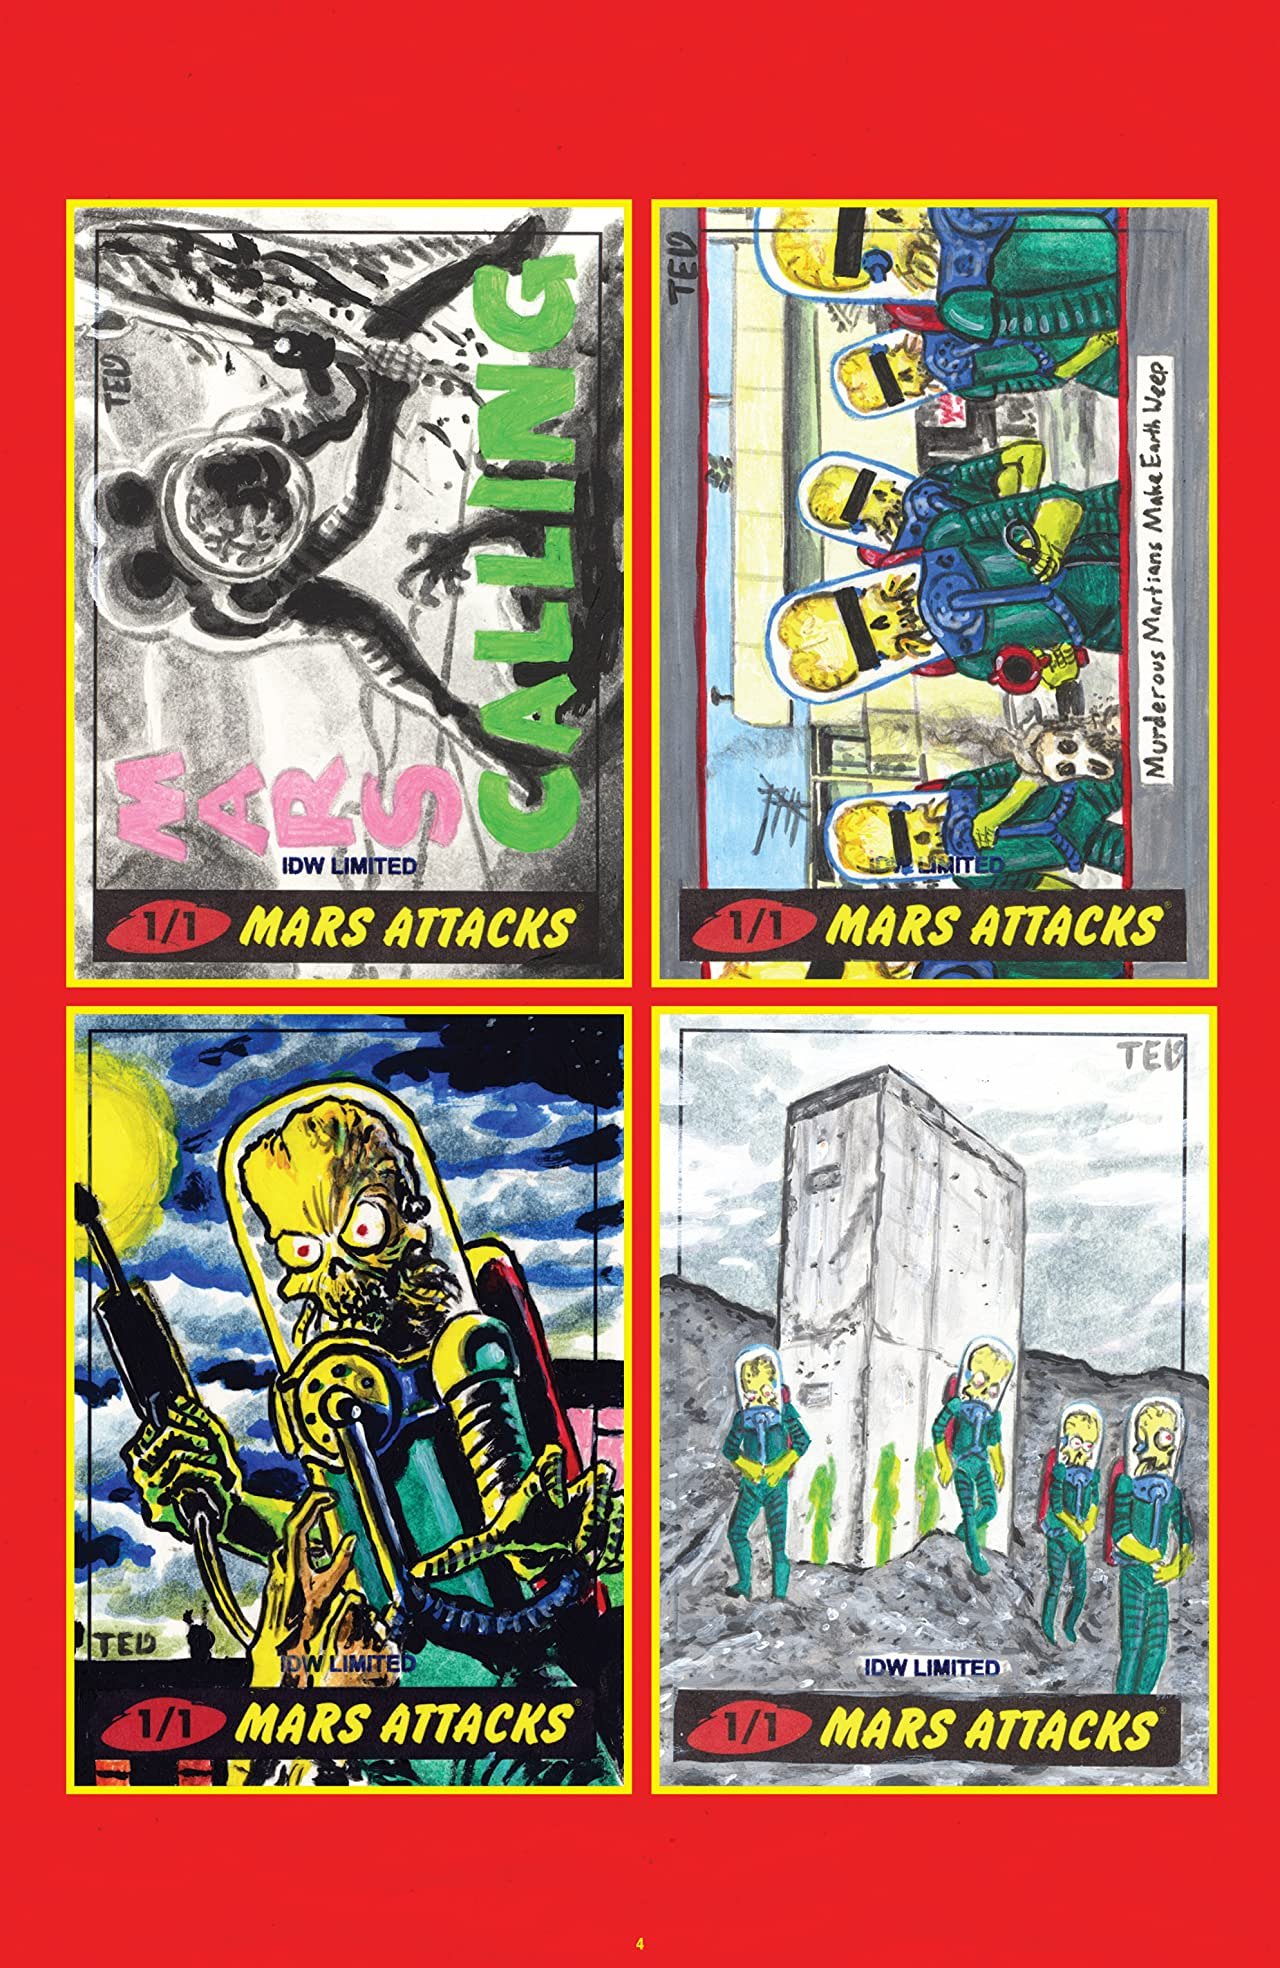 Mars Attacks Art Gallery #1